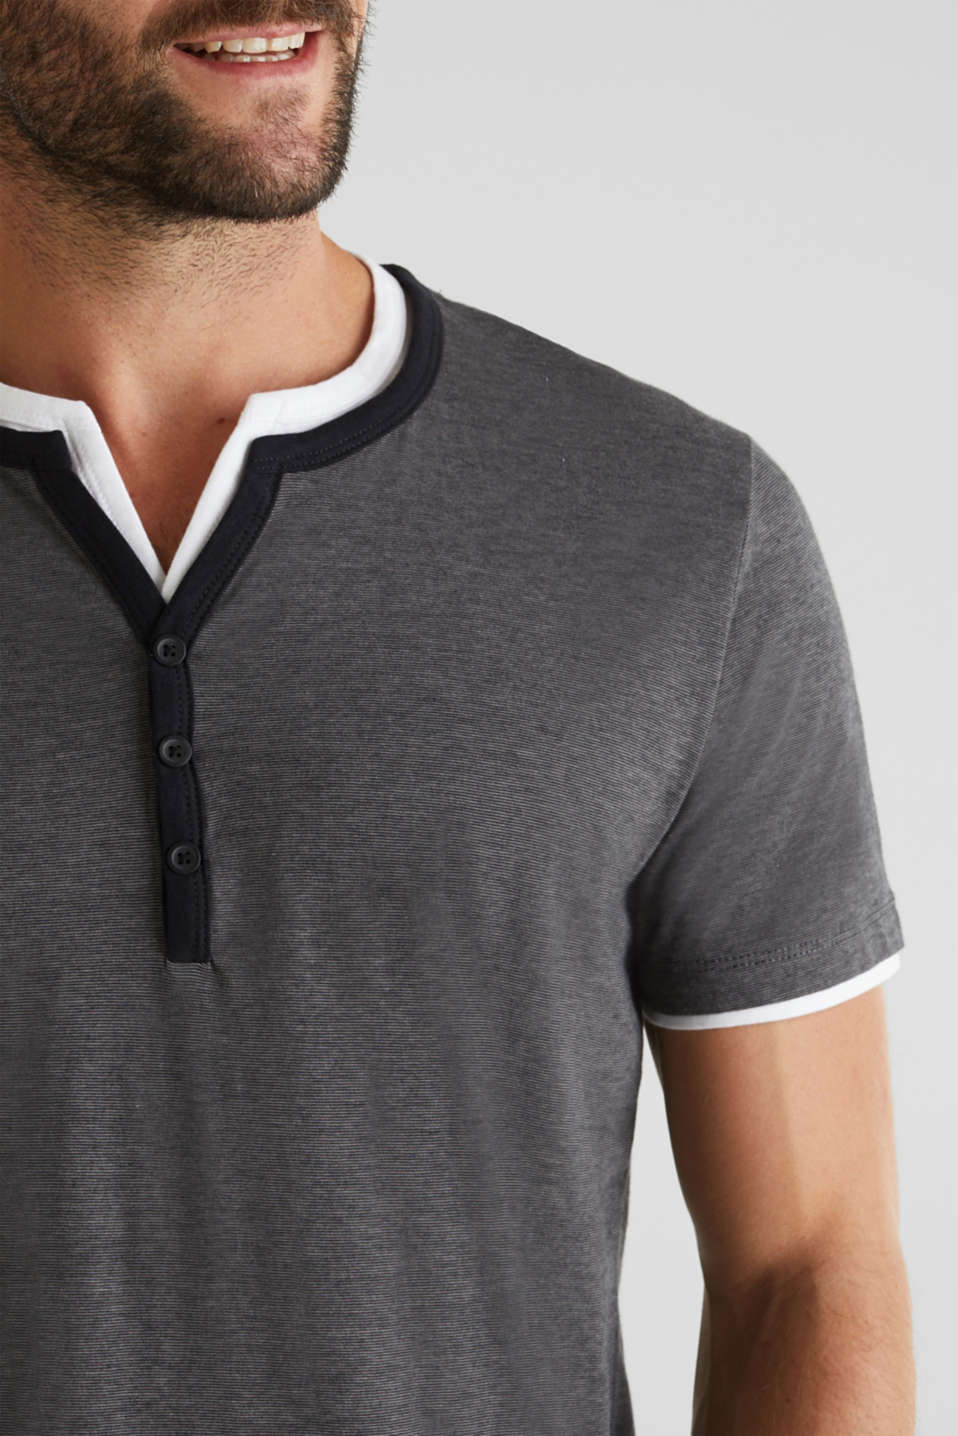 Jersey T-shirt in 100% cotton, BLACK 3, detail image number 1